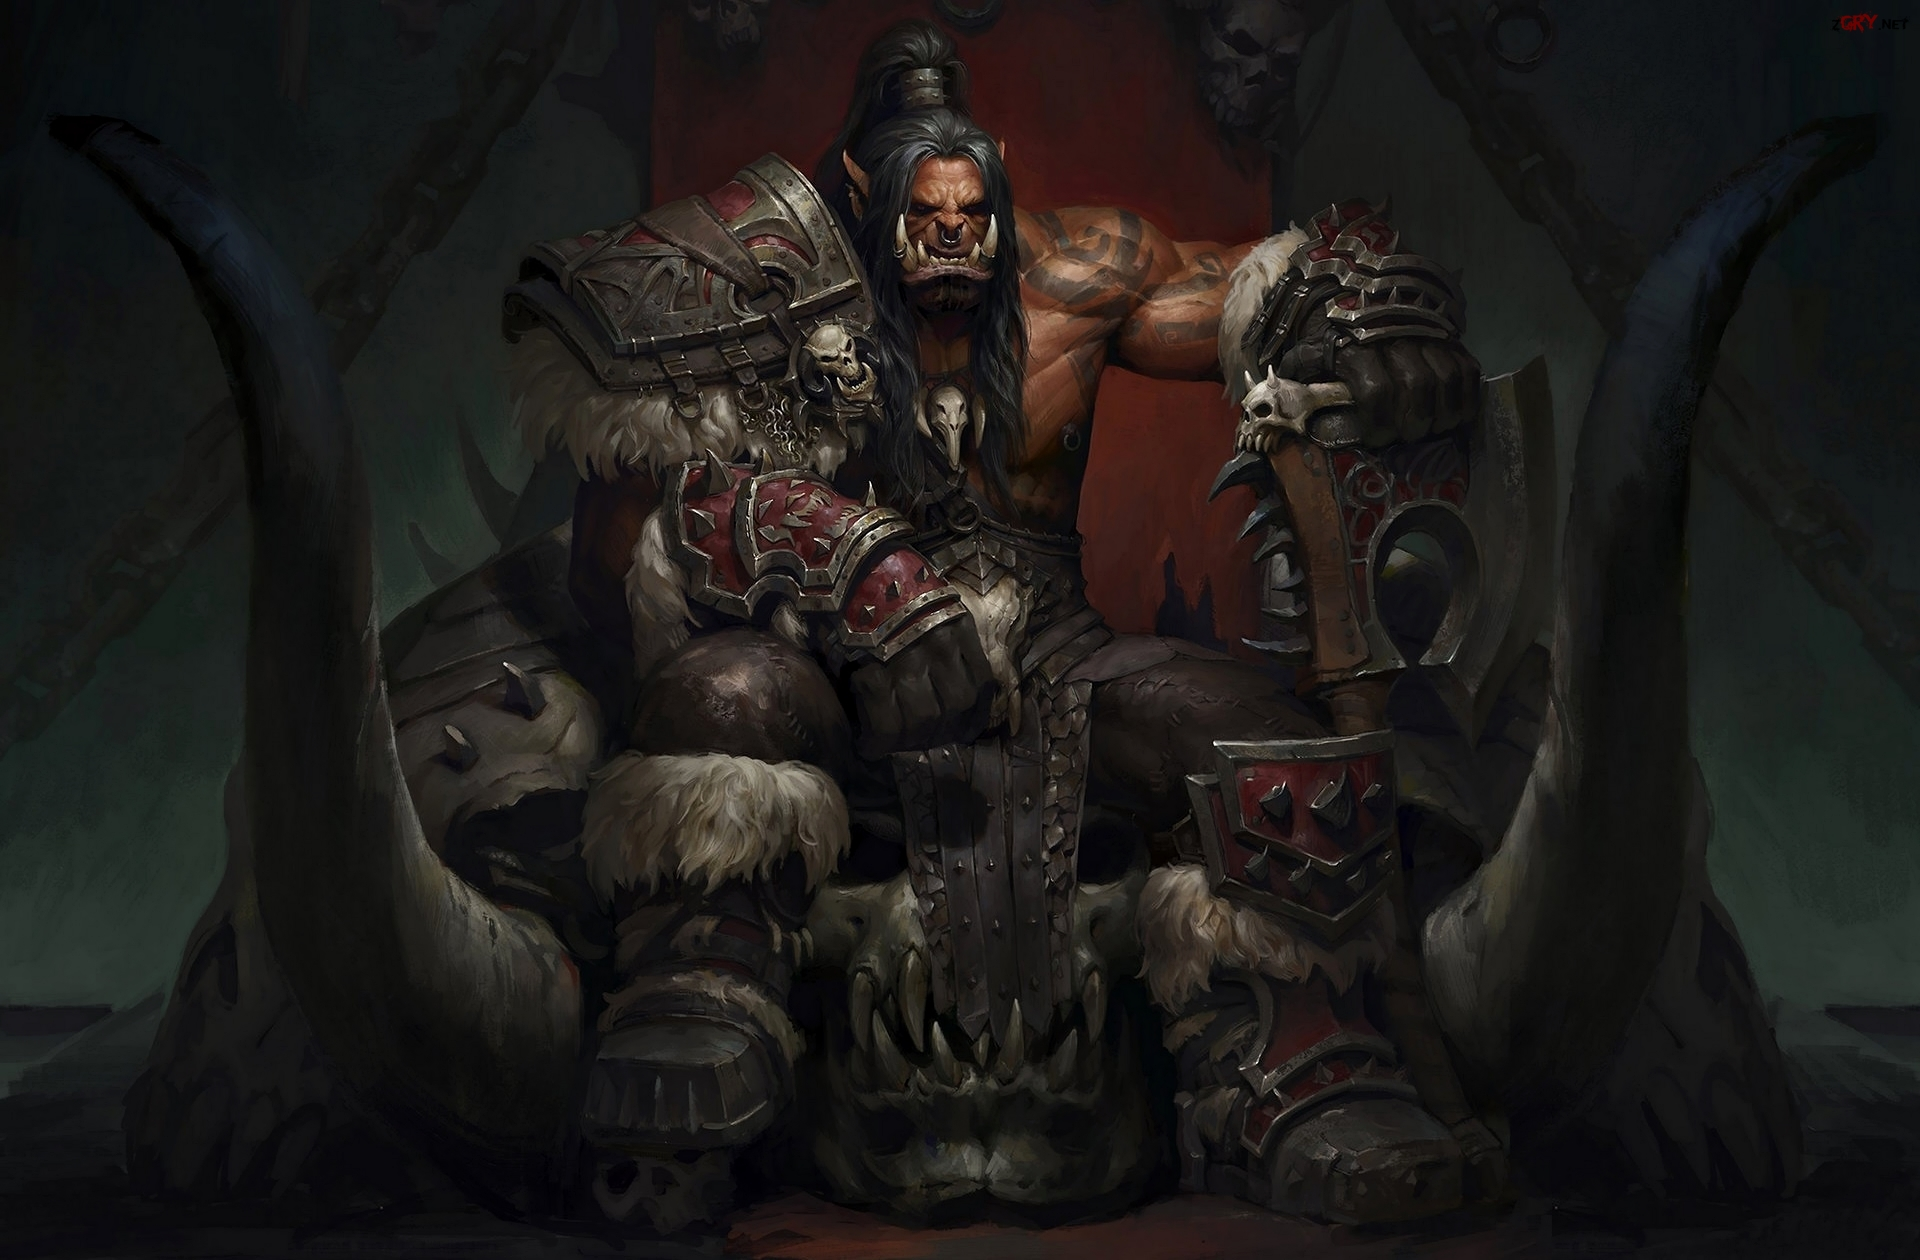 World of Warcraft: Warlords of Draenor, Ork, Grommash Hellscream, Tron